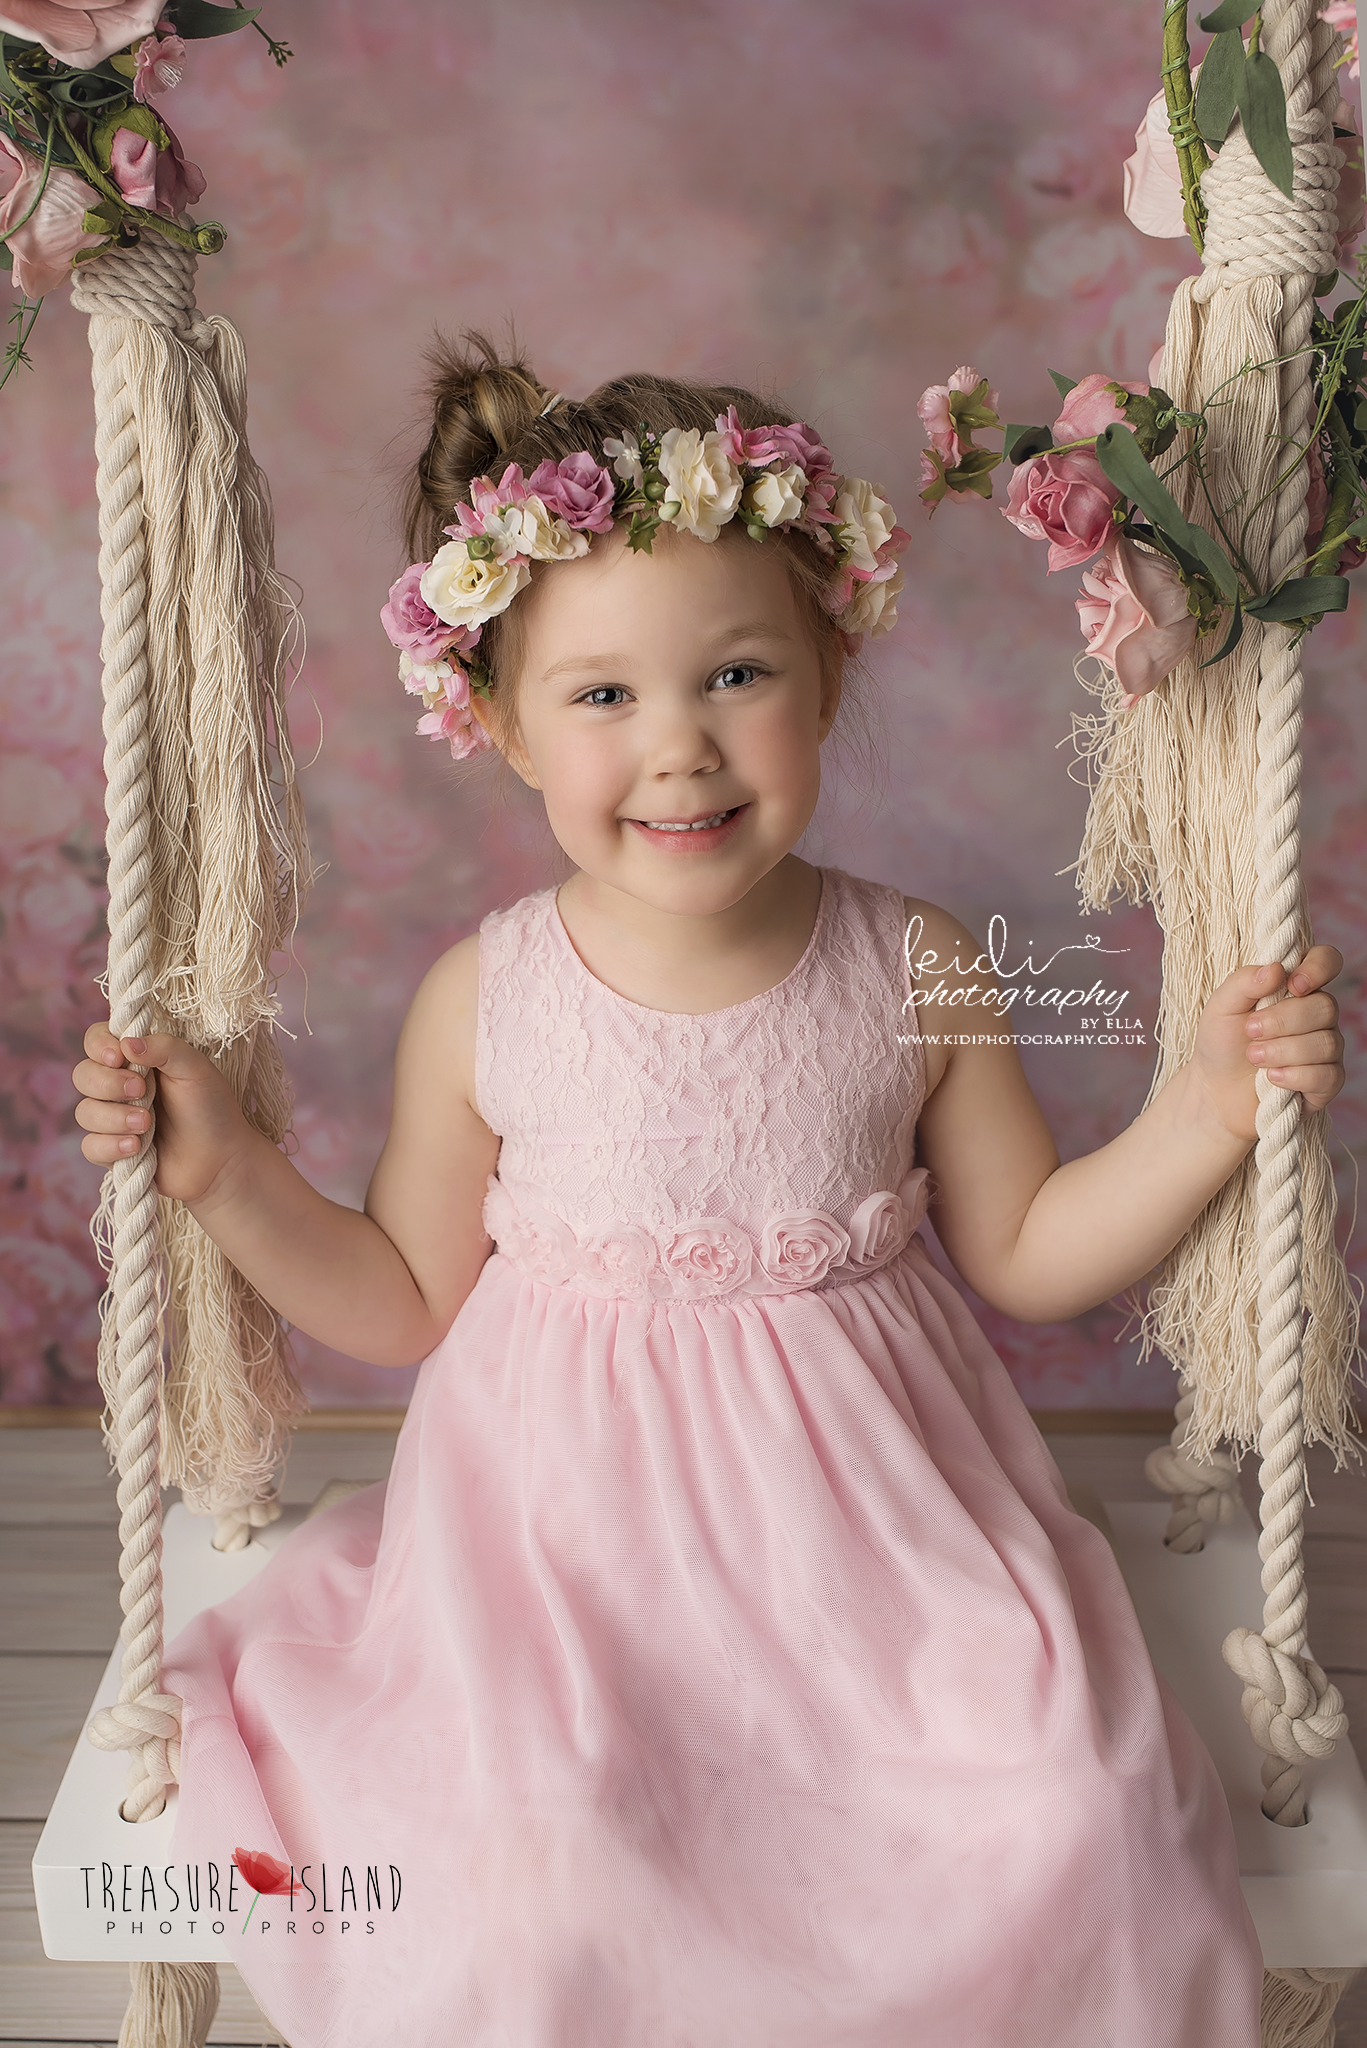 Fairytale themed photo session